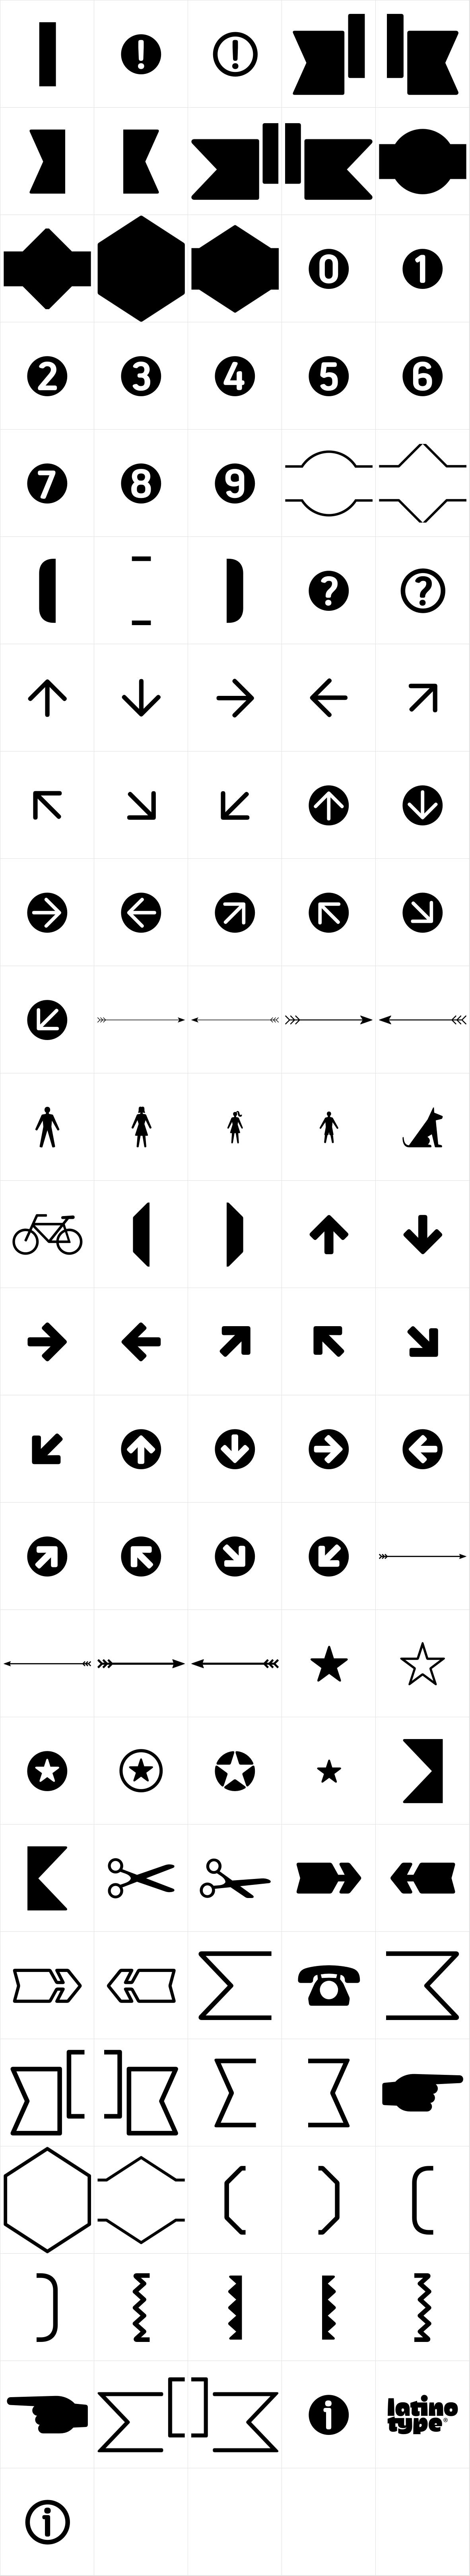 Estandar Rounded Dingbats